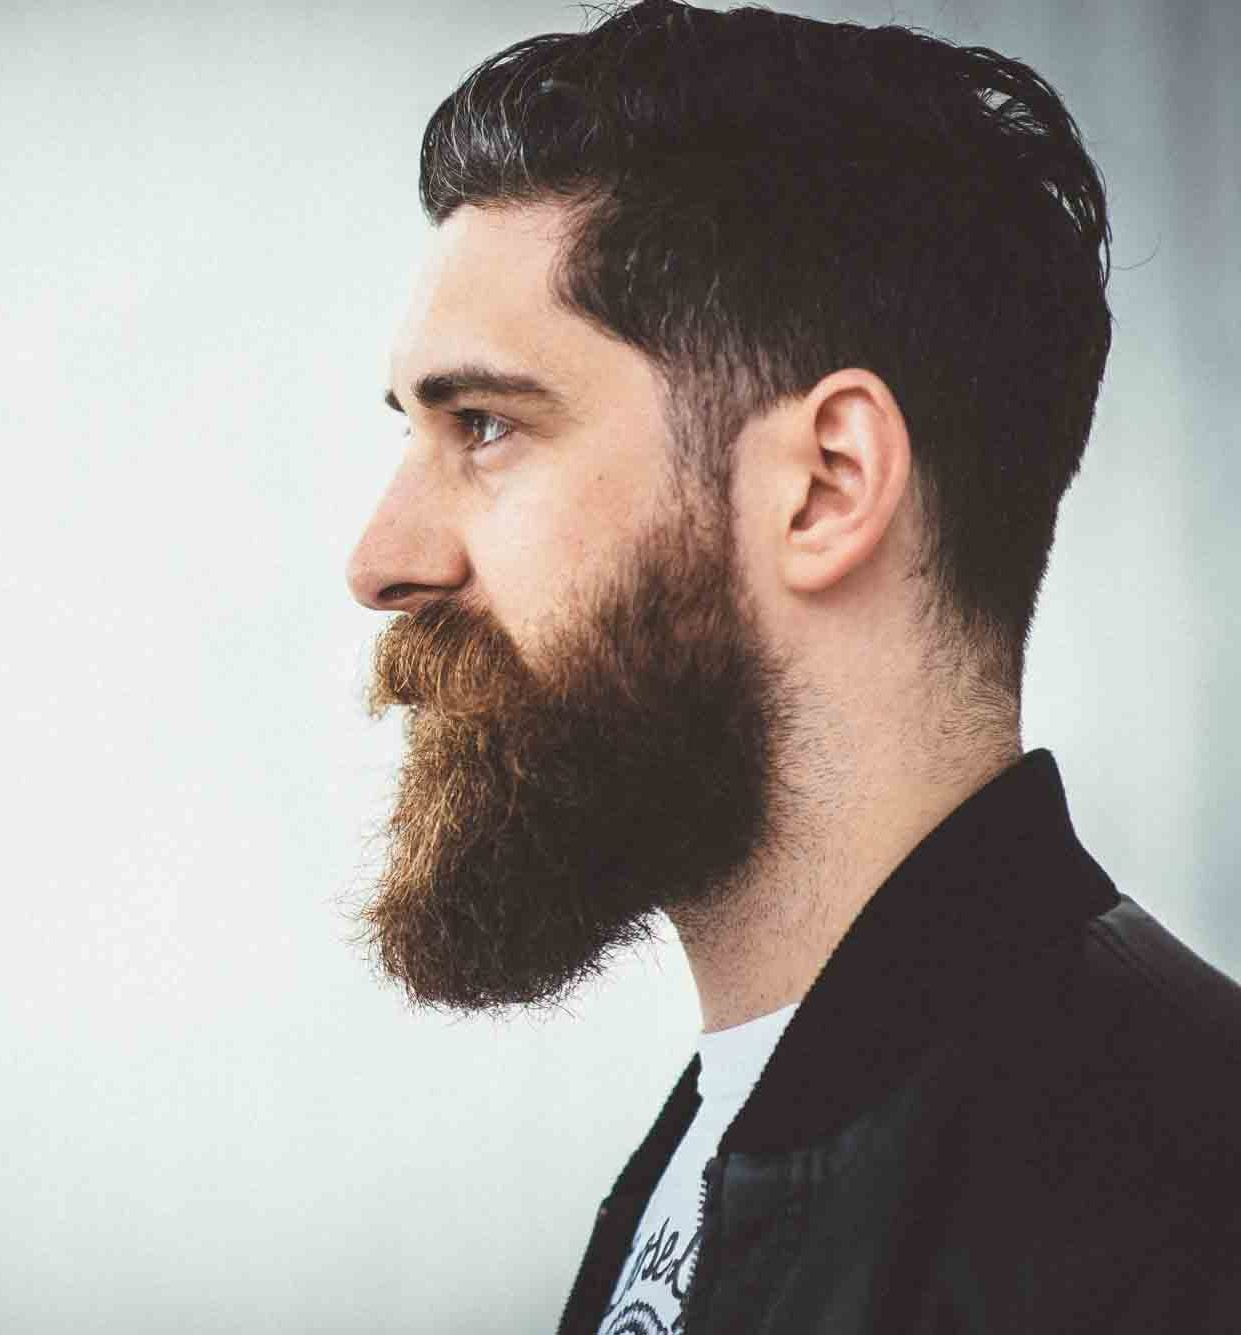 beard hair style beard styles and tips on growing and styling beard 9009